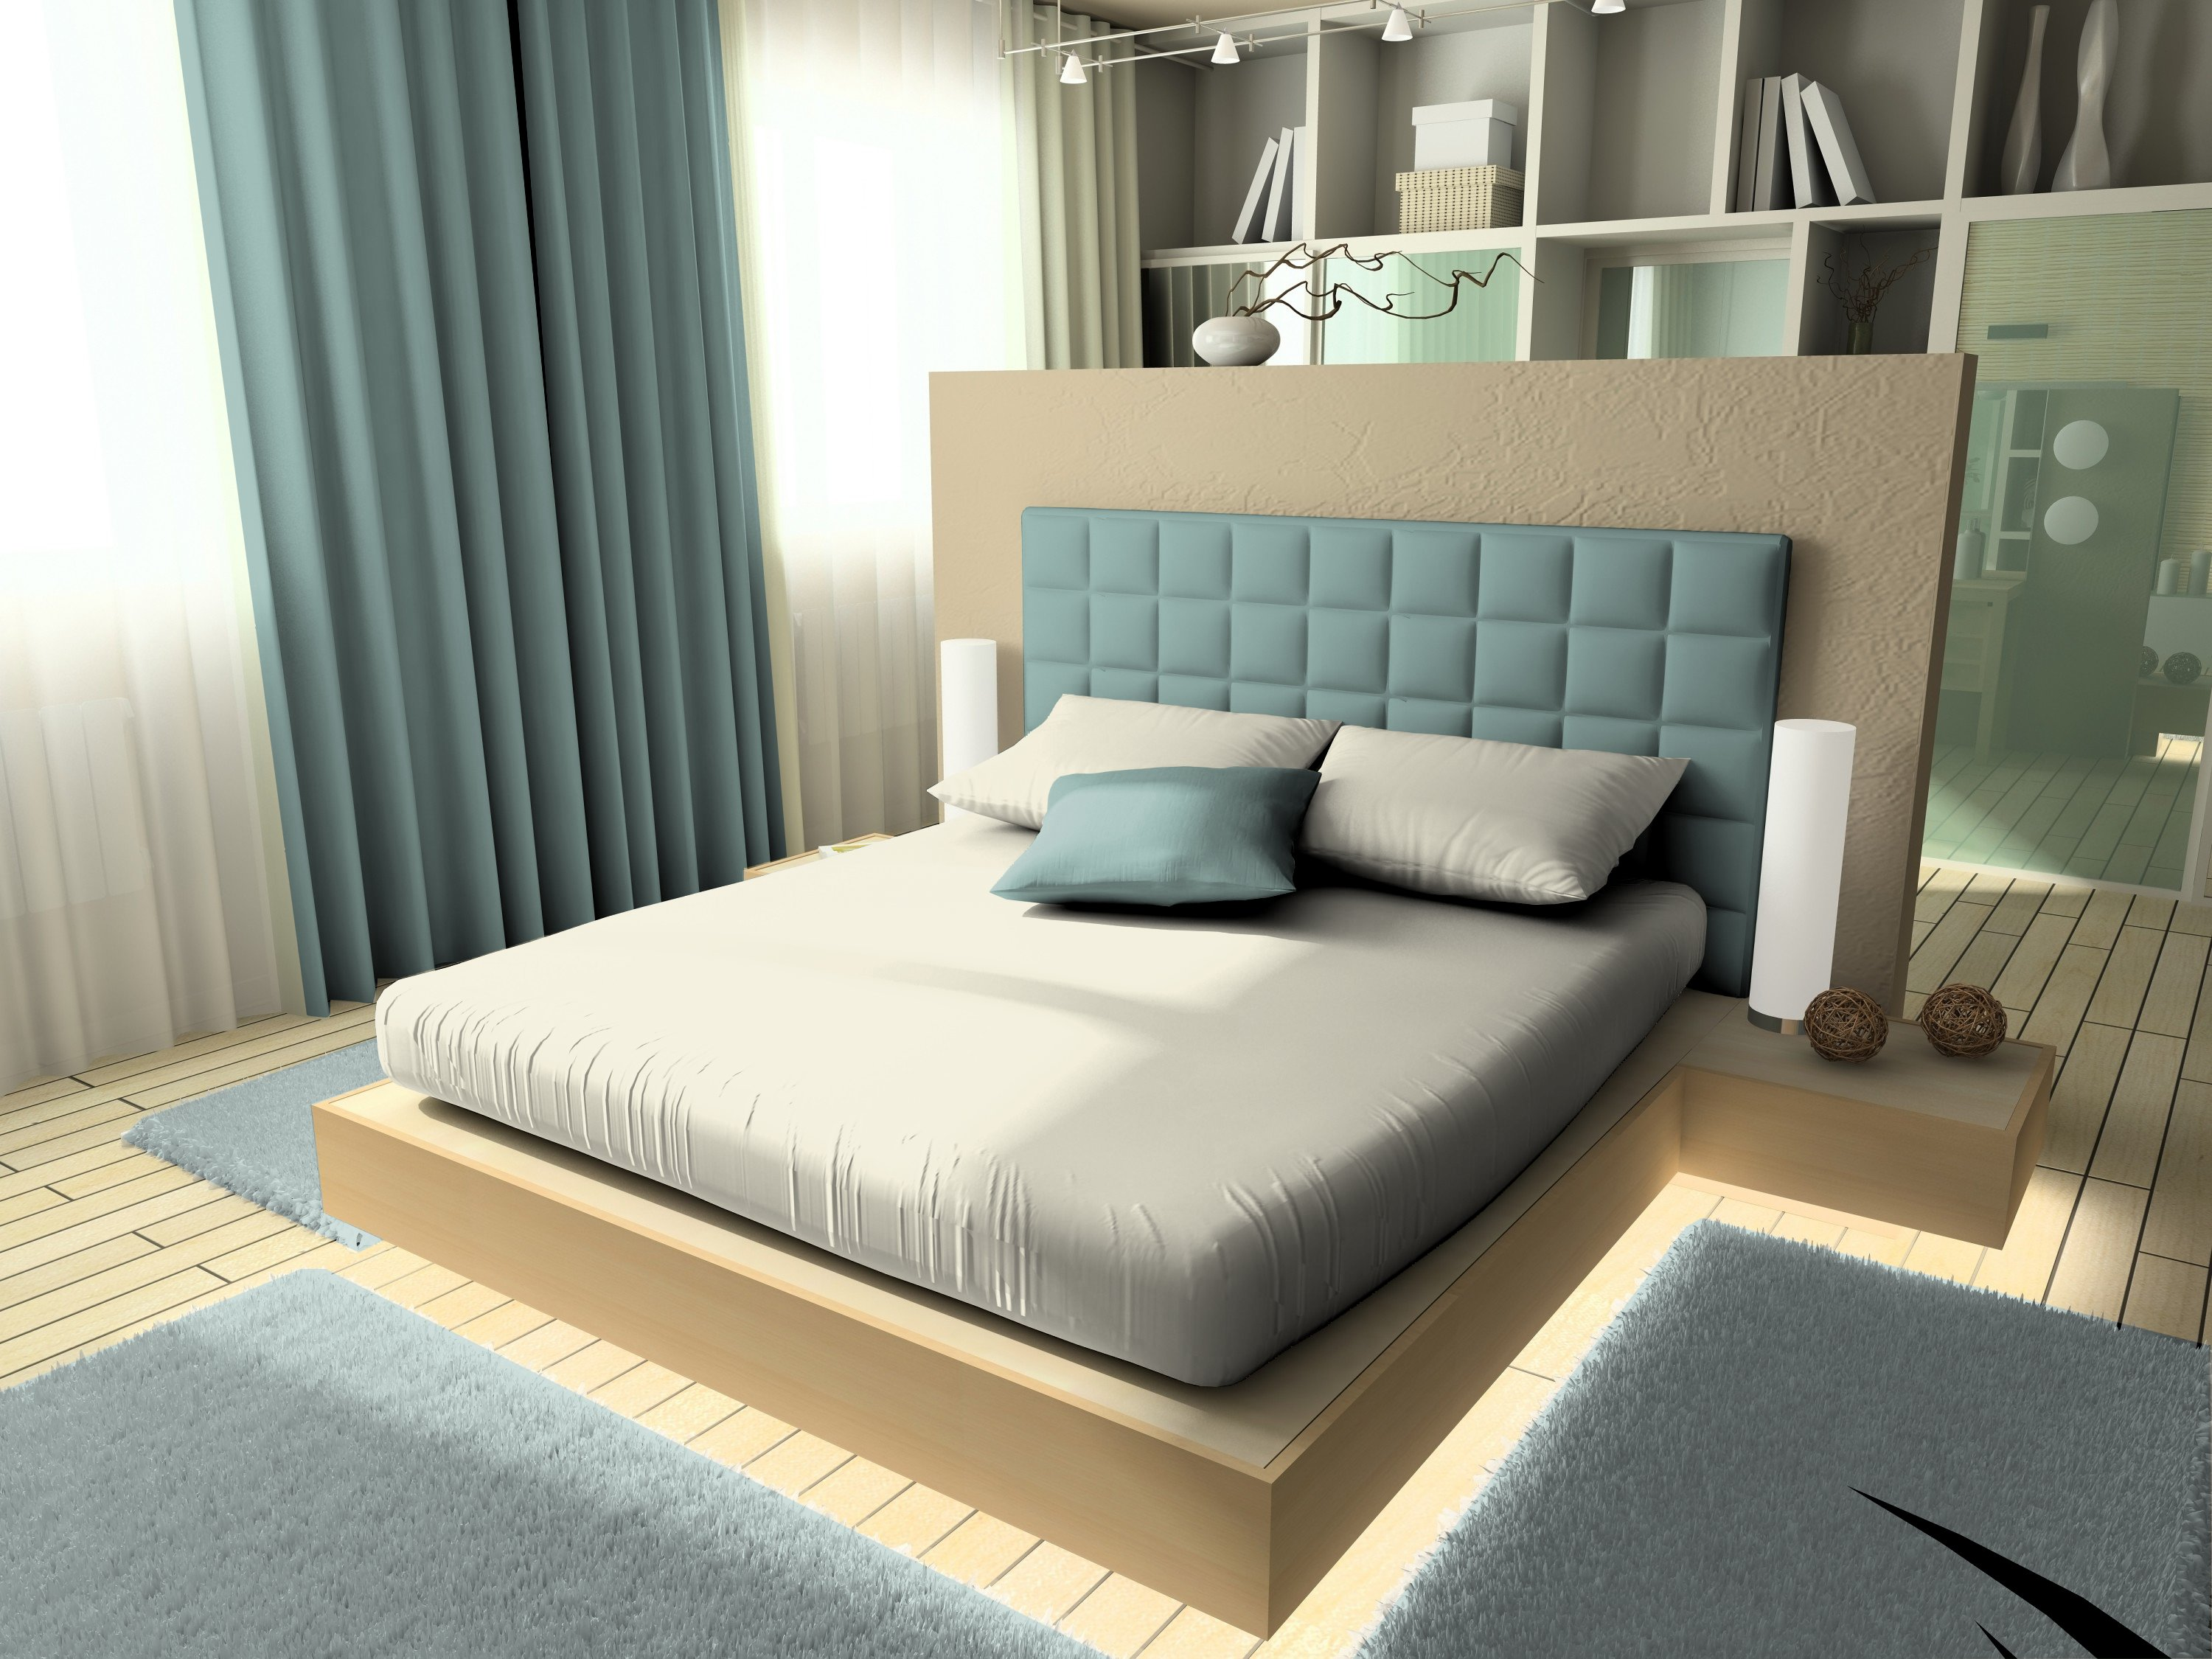 Spaces Flexi Fit Ivory With Fabric Drop Double Cotton Double Bed Sheets in Ivory Colour by Spaces